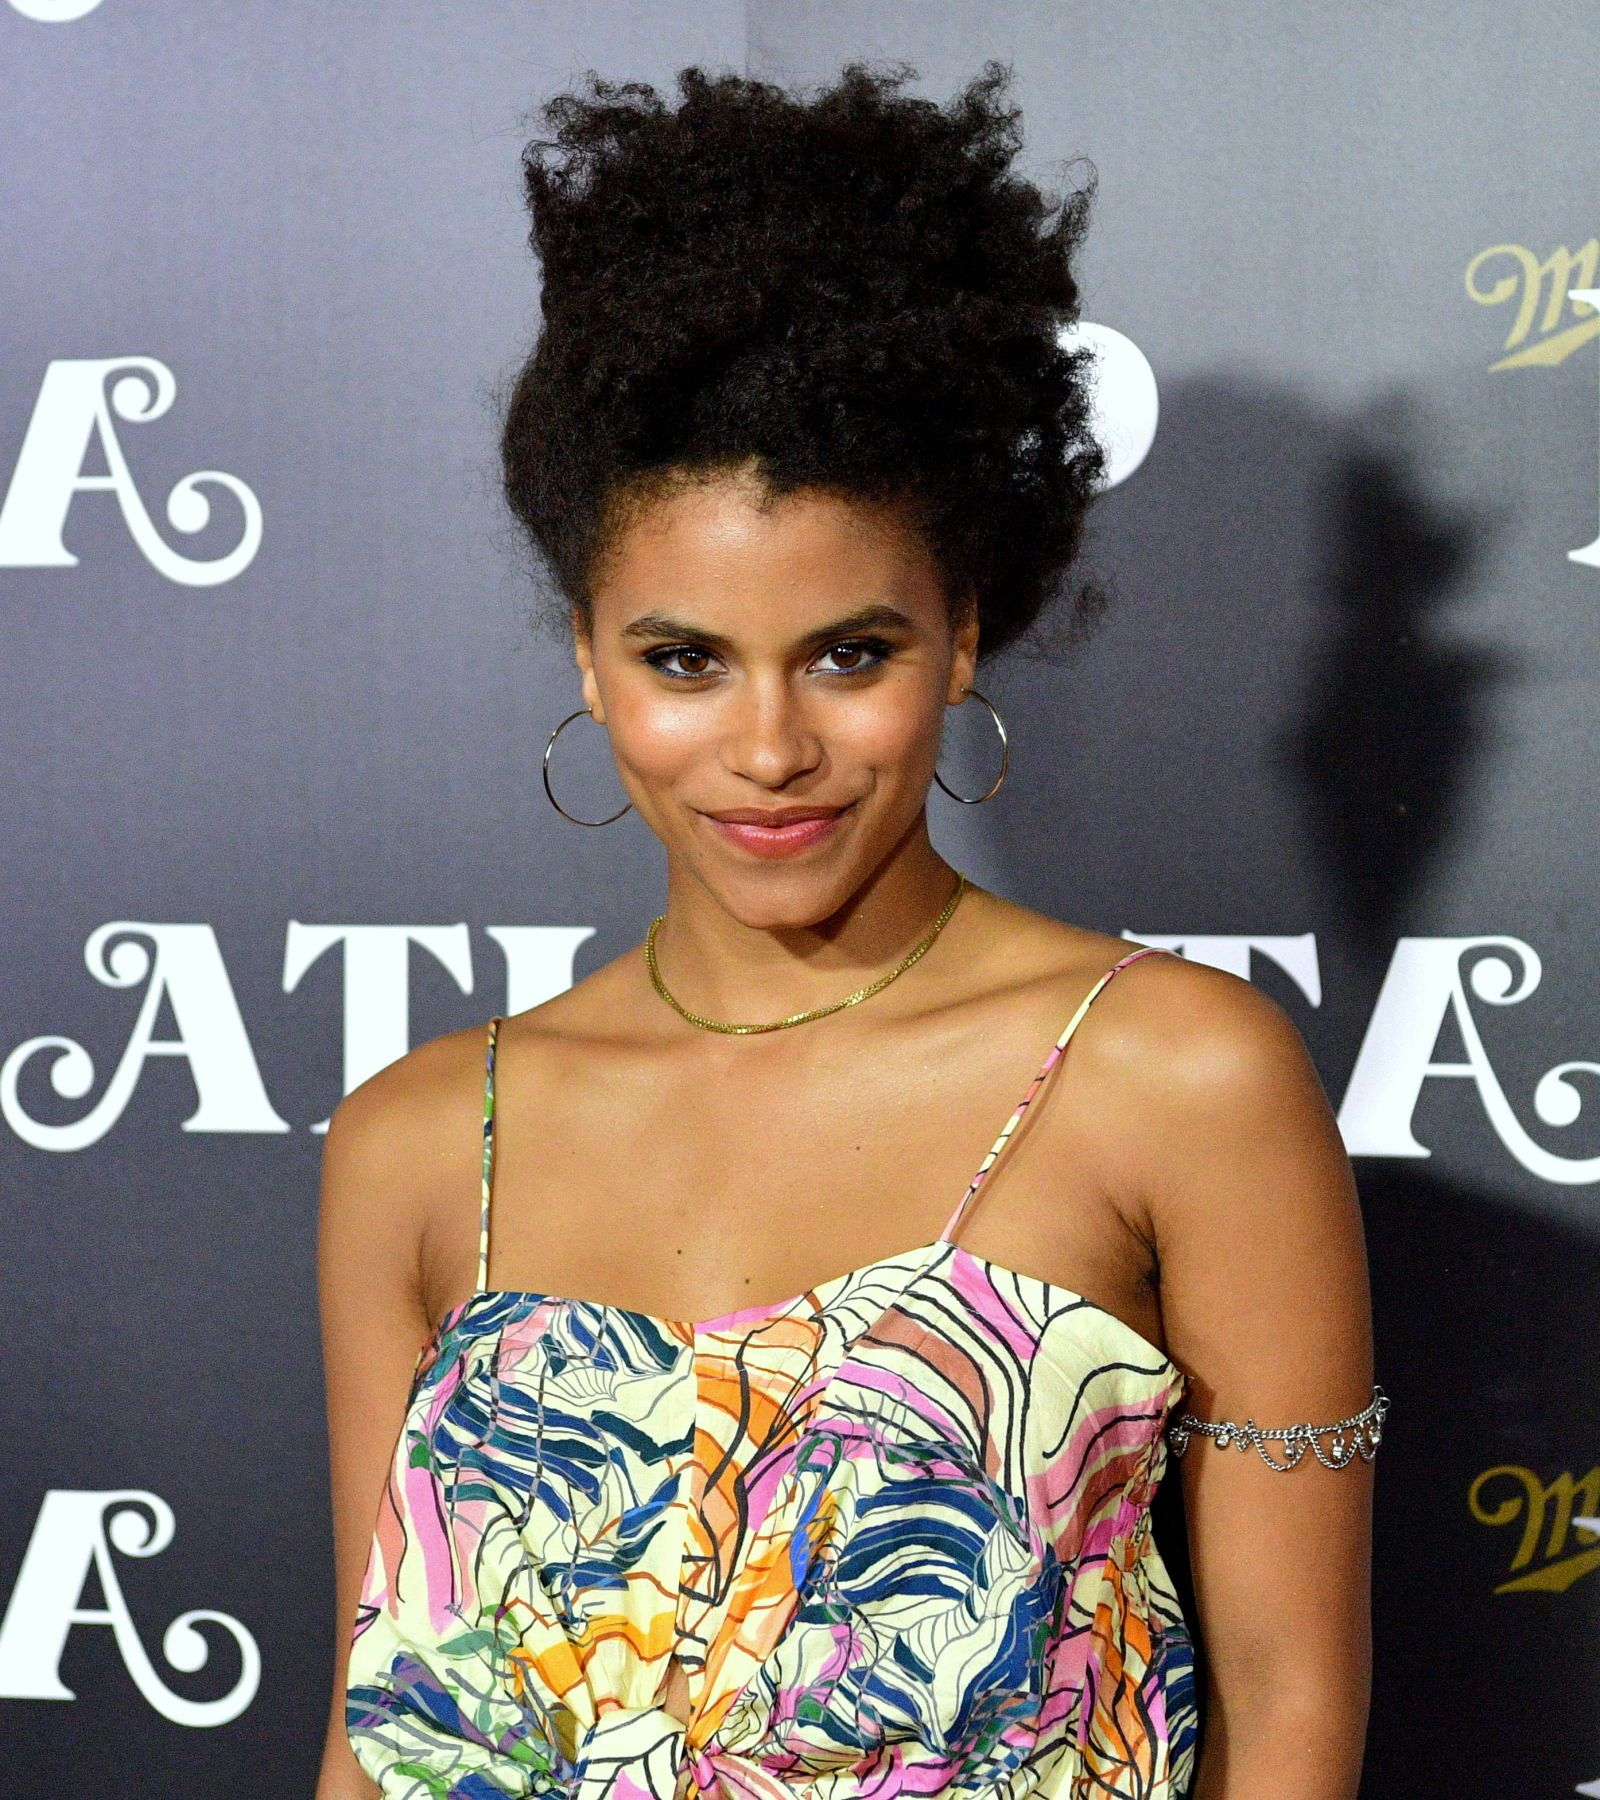 Fappening Zazie Beetz nude (97 photos), Topless, Cleavage, Instagram, in bikini 2018